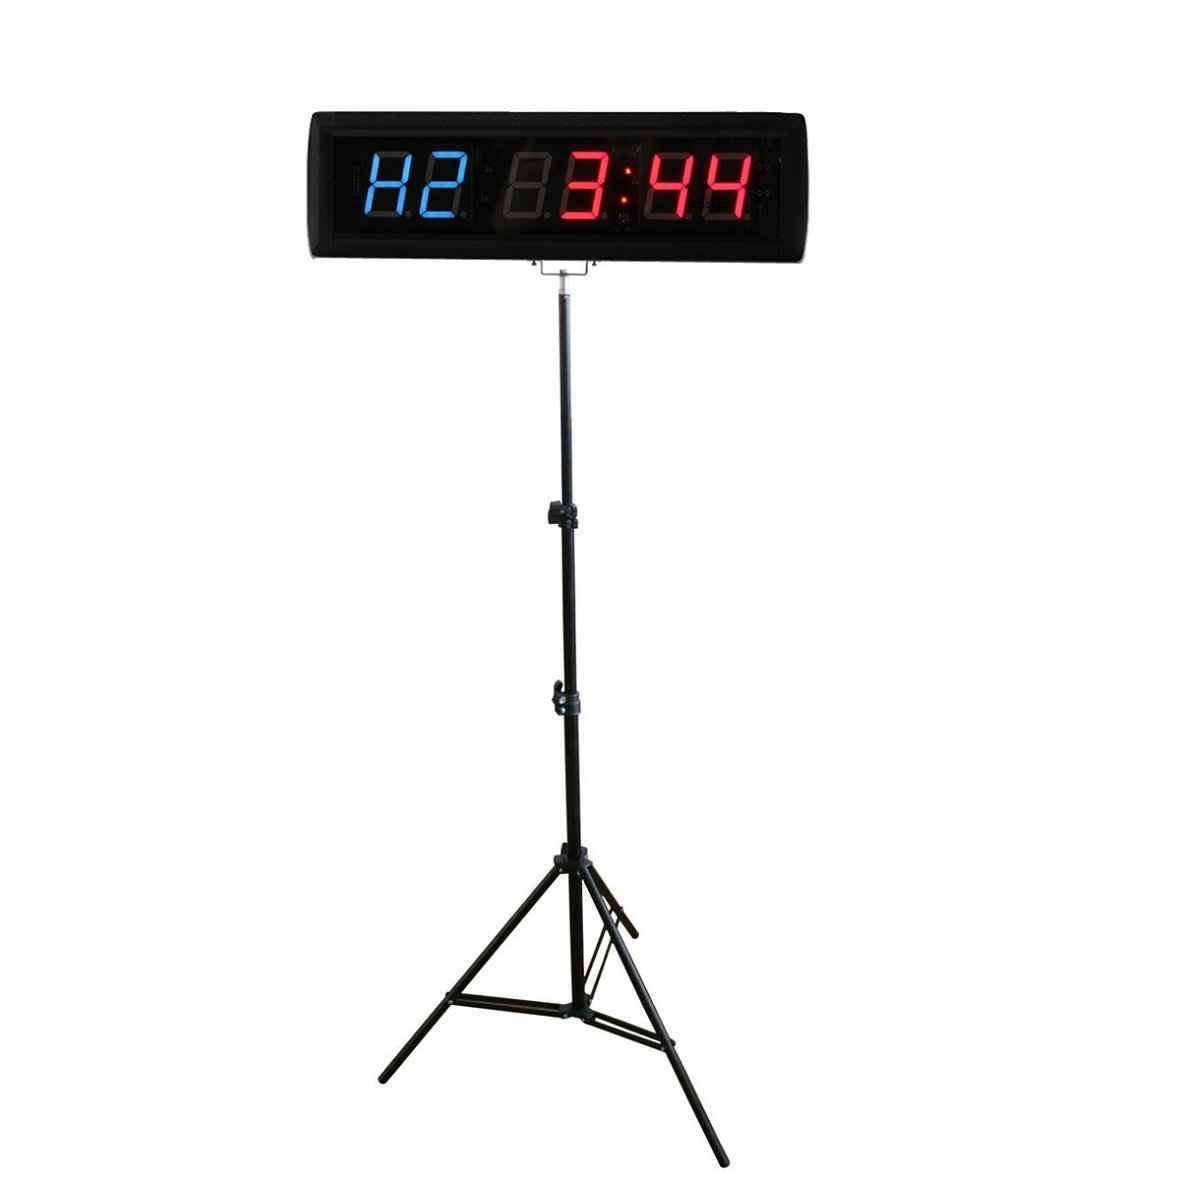 BT 1.8'' LED Interval Wall Clock Count Down/Up Stopwatch For Gym Garage Fitness With Tripod by BTBSIGN